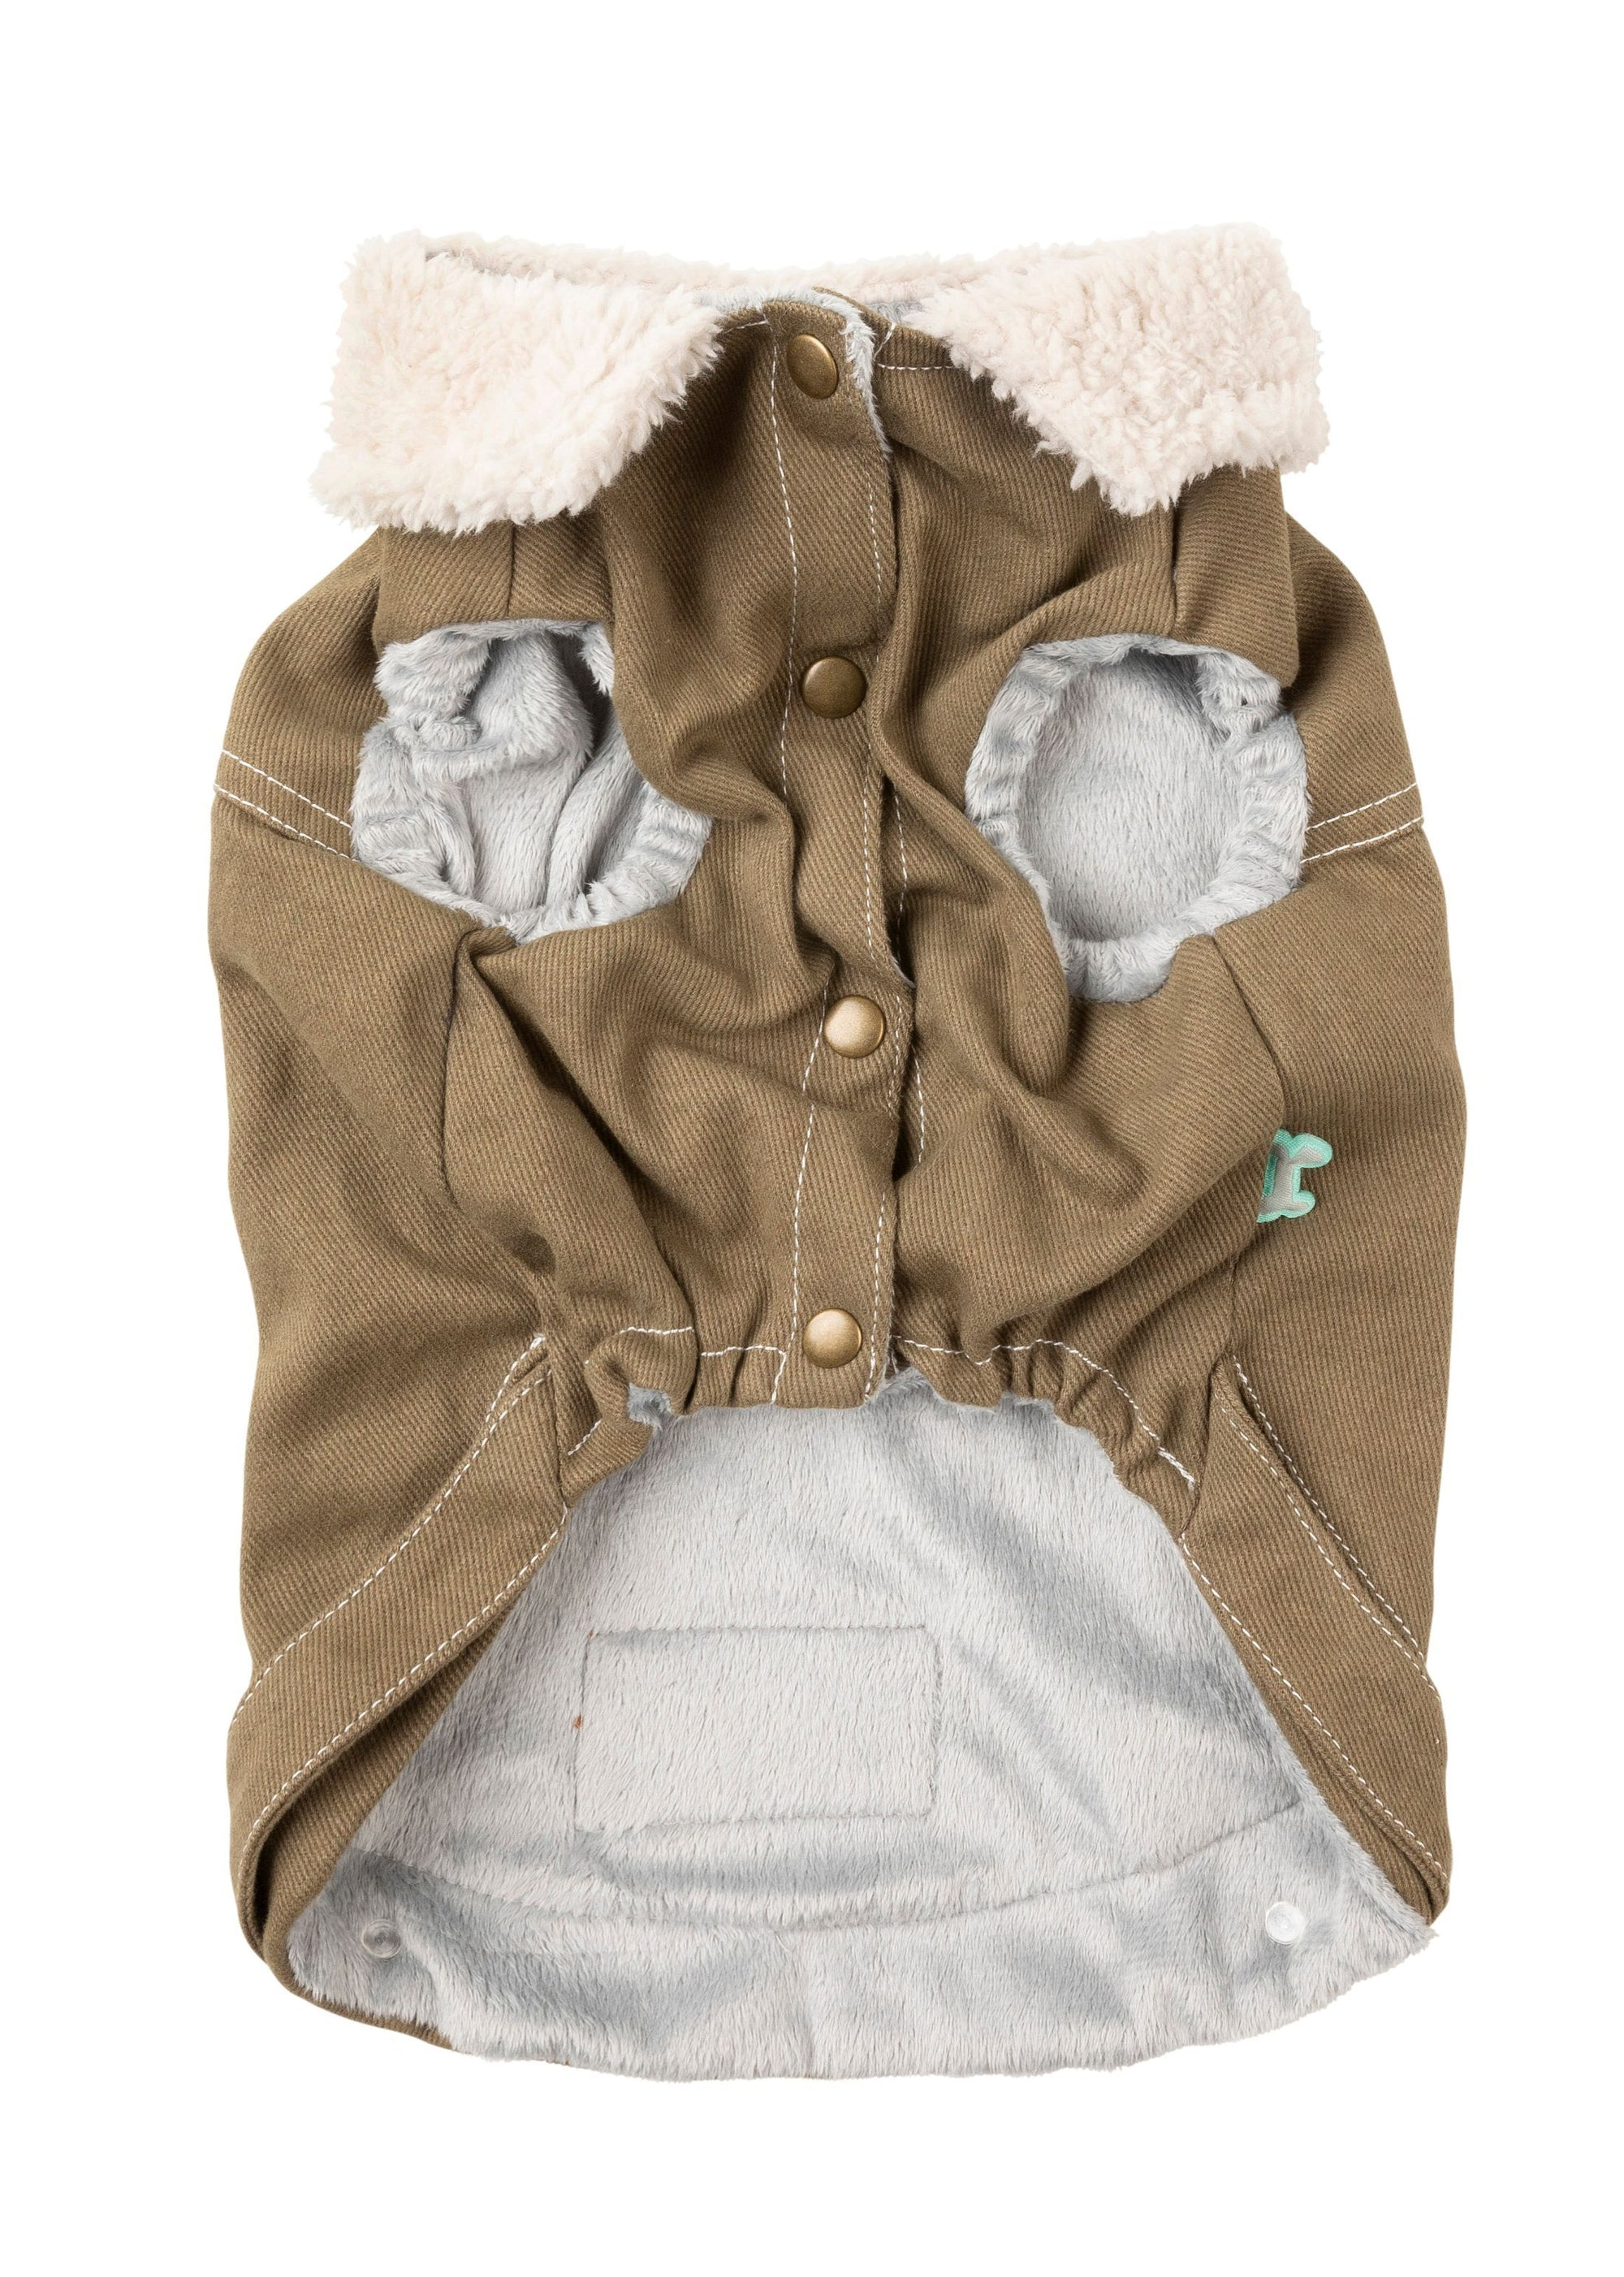 Fuzzyard Rebel Jacket Olive - RSPCA VIC